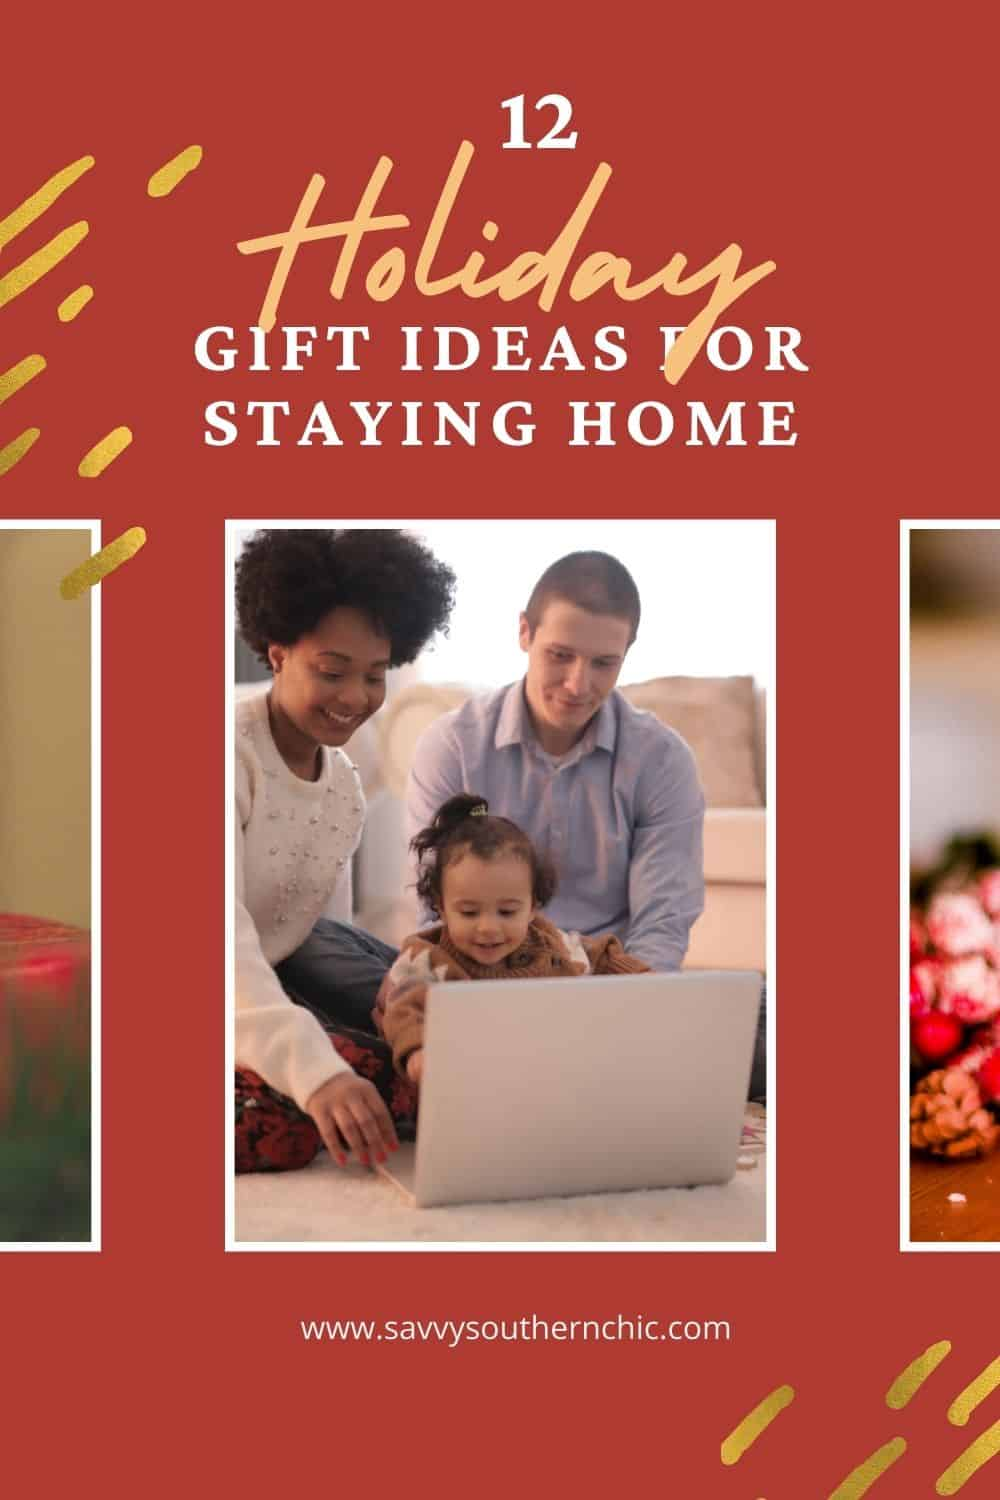 gifts for homebodies, gifts for staying home, for him, for her